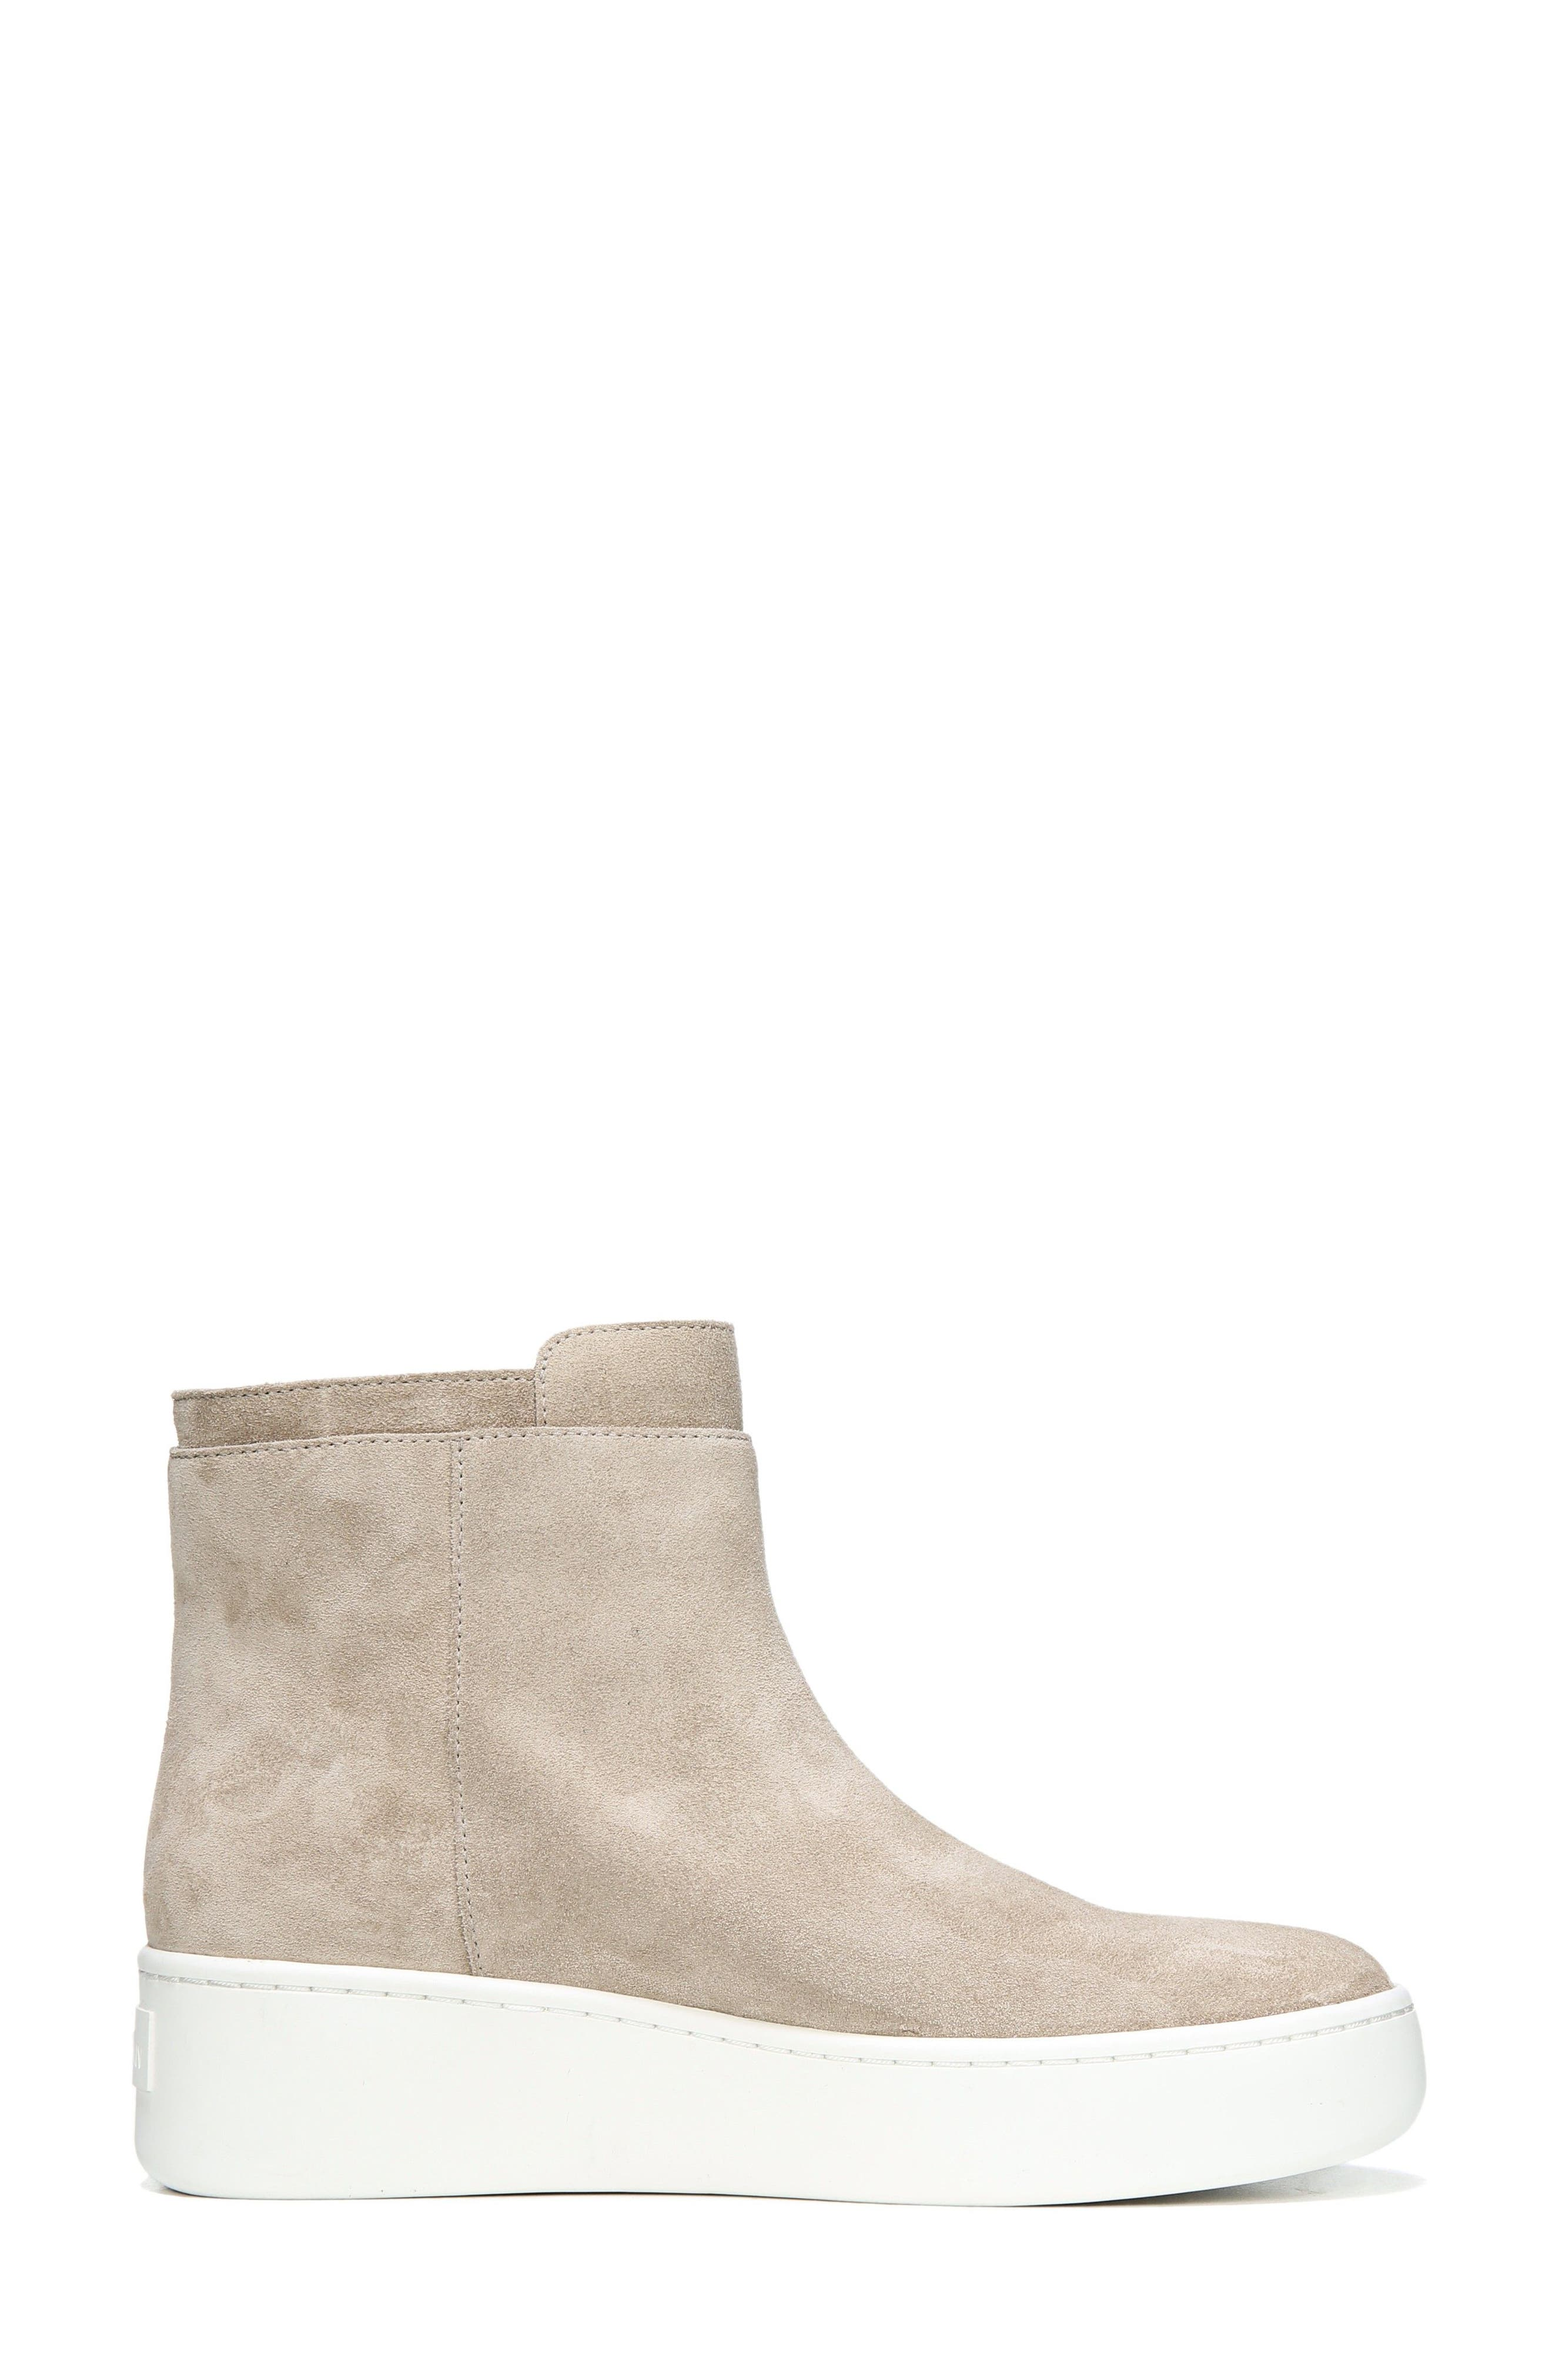 Alternate Image 3  - Via Spiga Easton High Top Sneaker (Women)